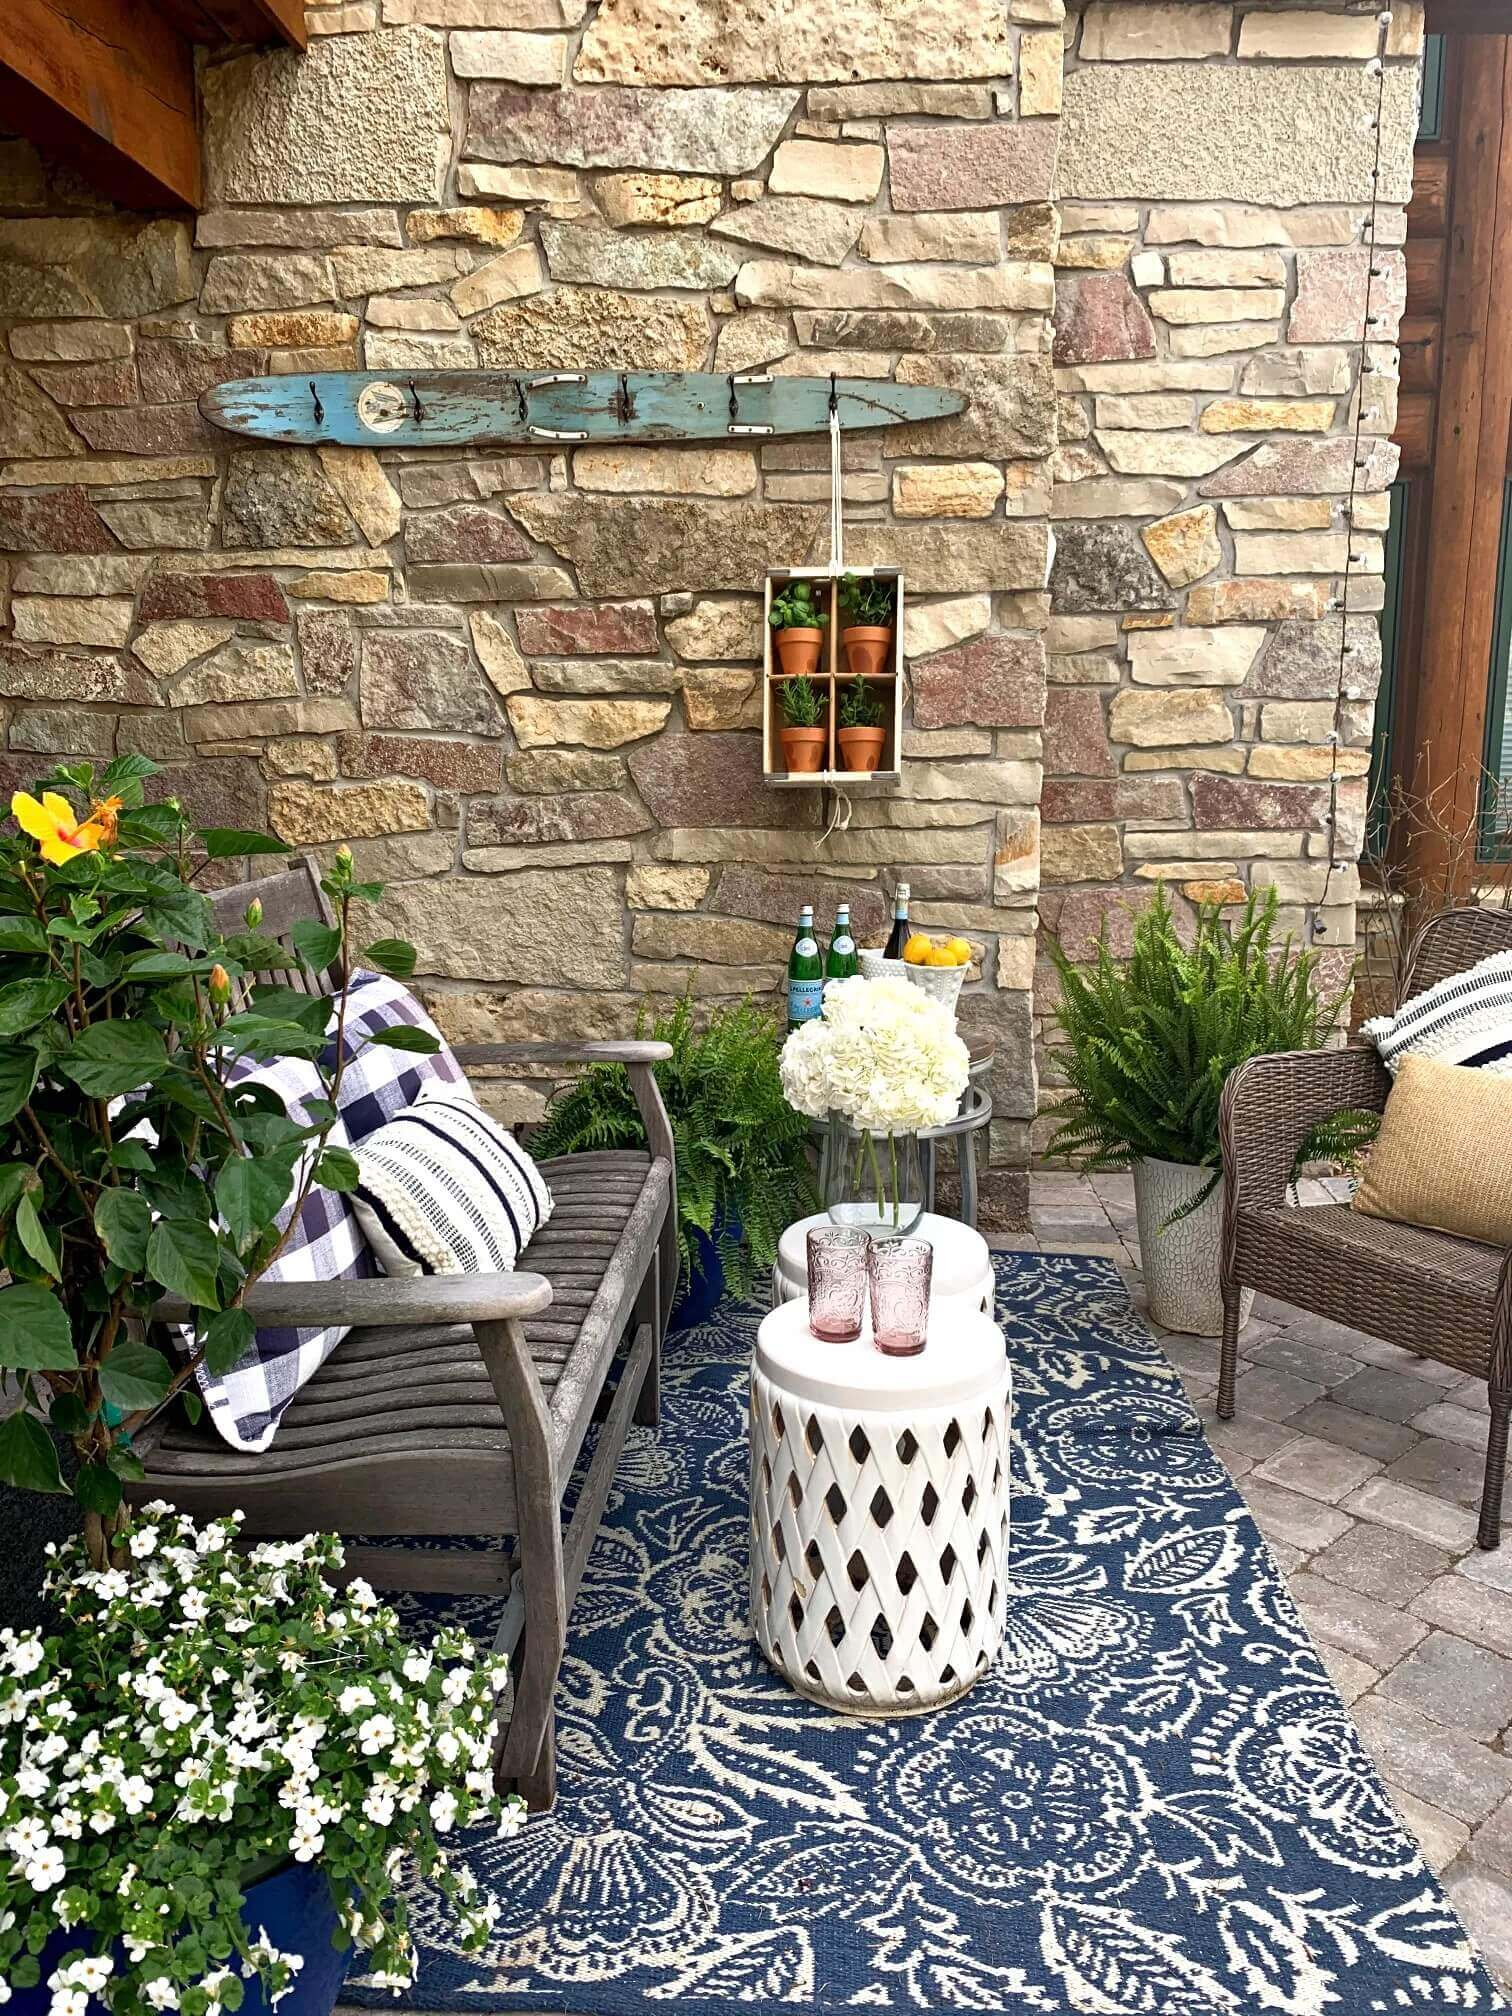 Welcome Home Saturday: Summer Porch Decor in Blue and White